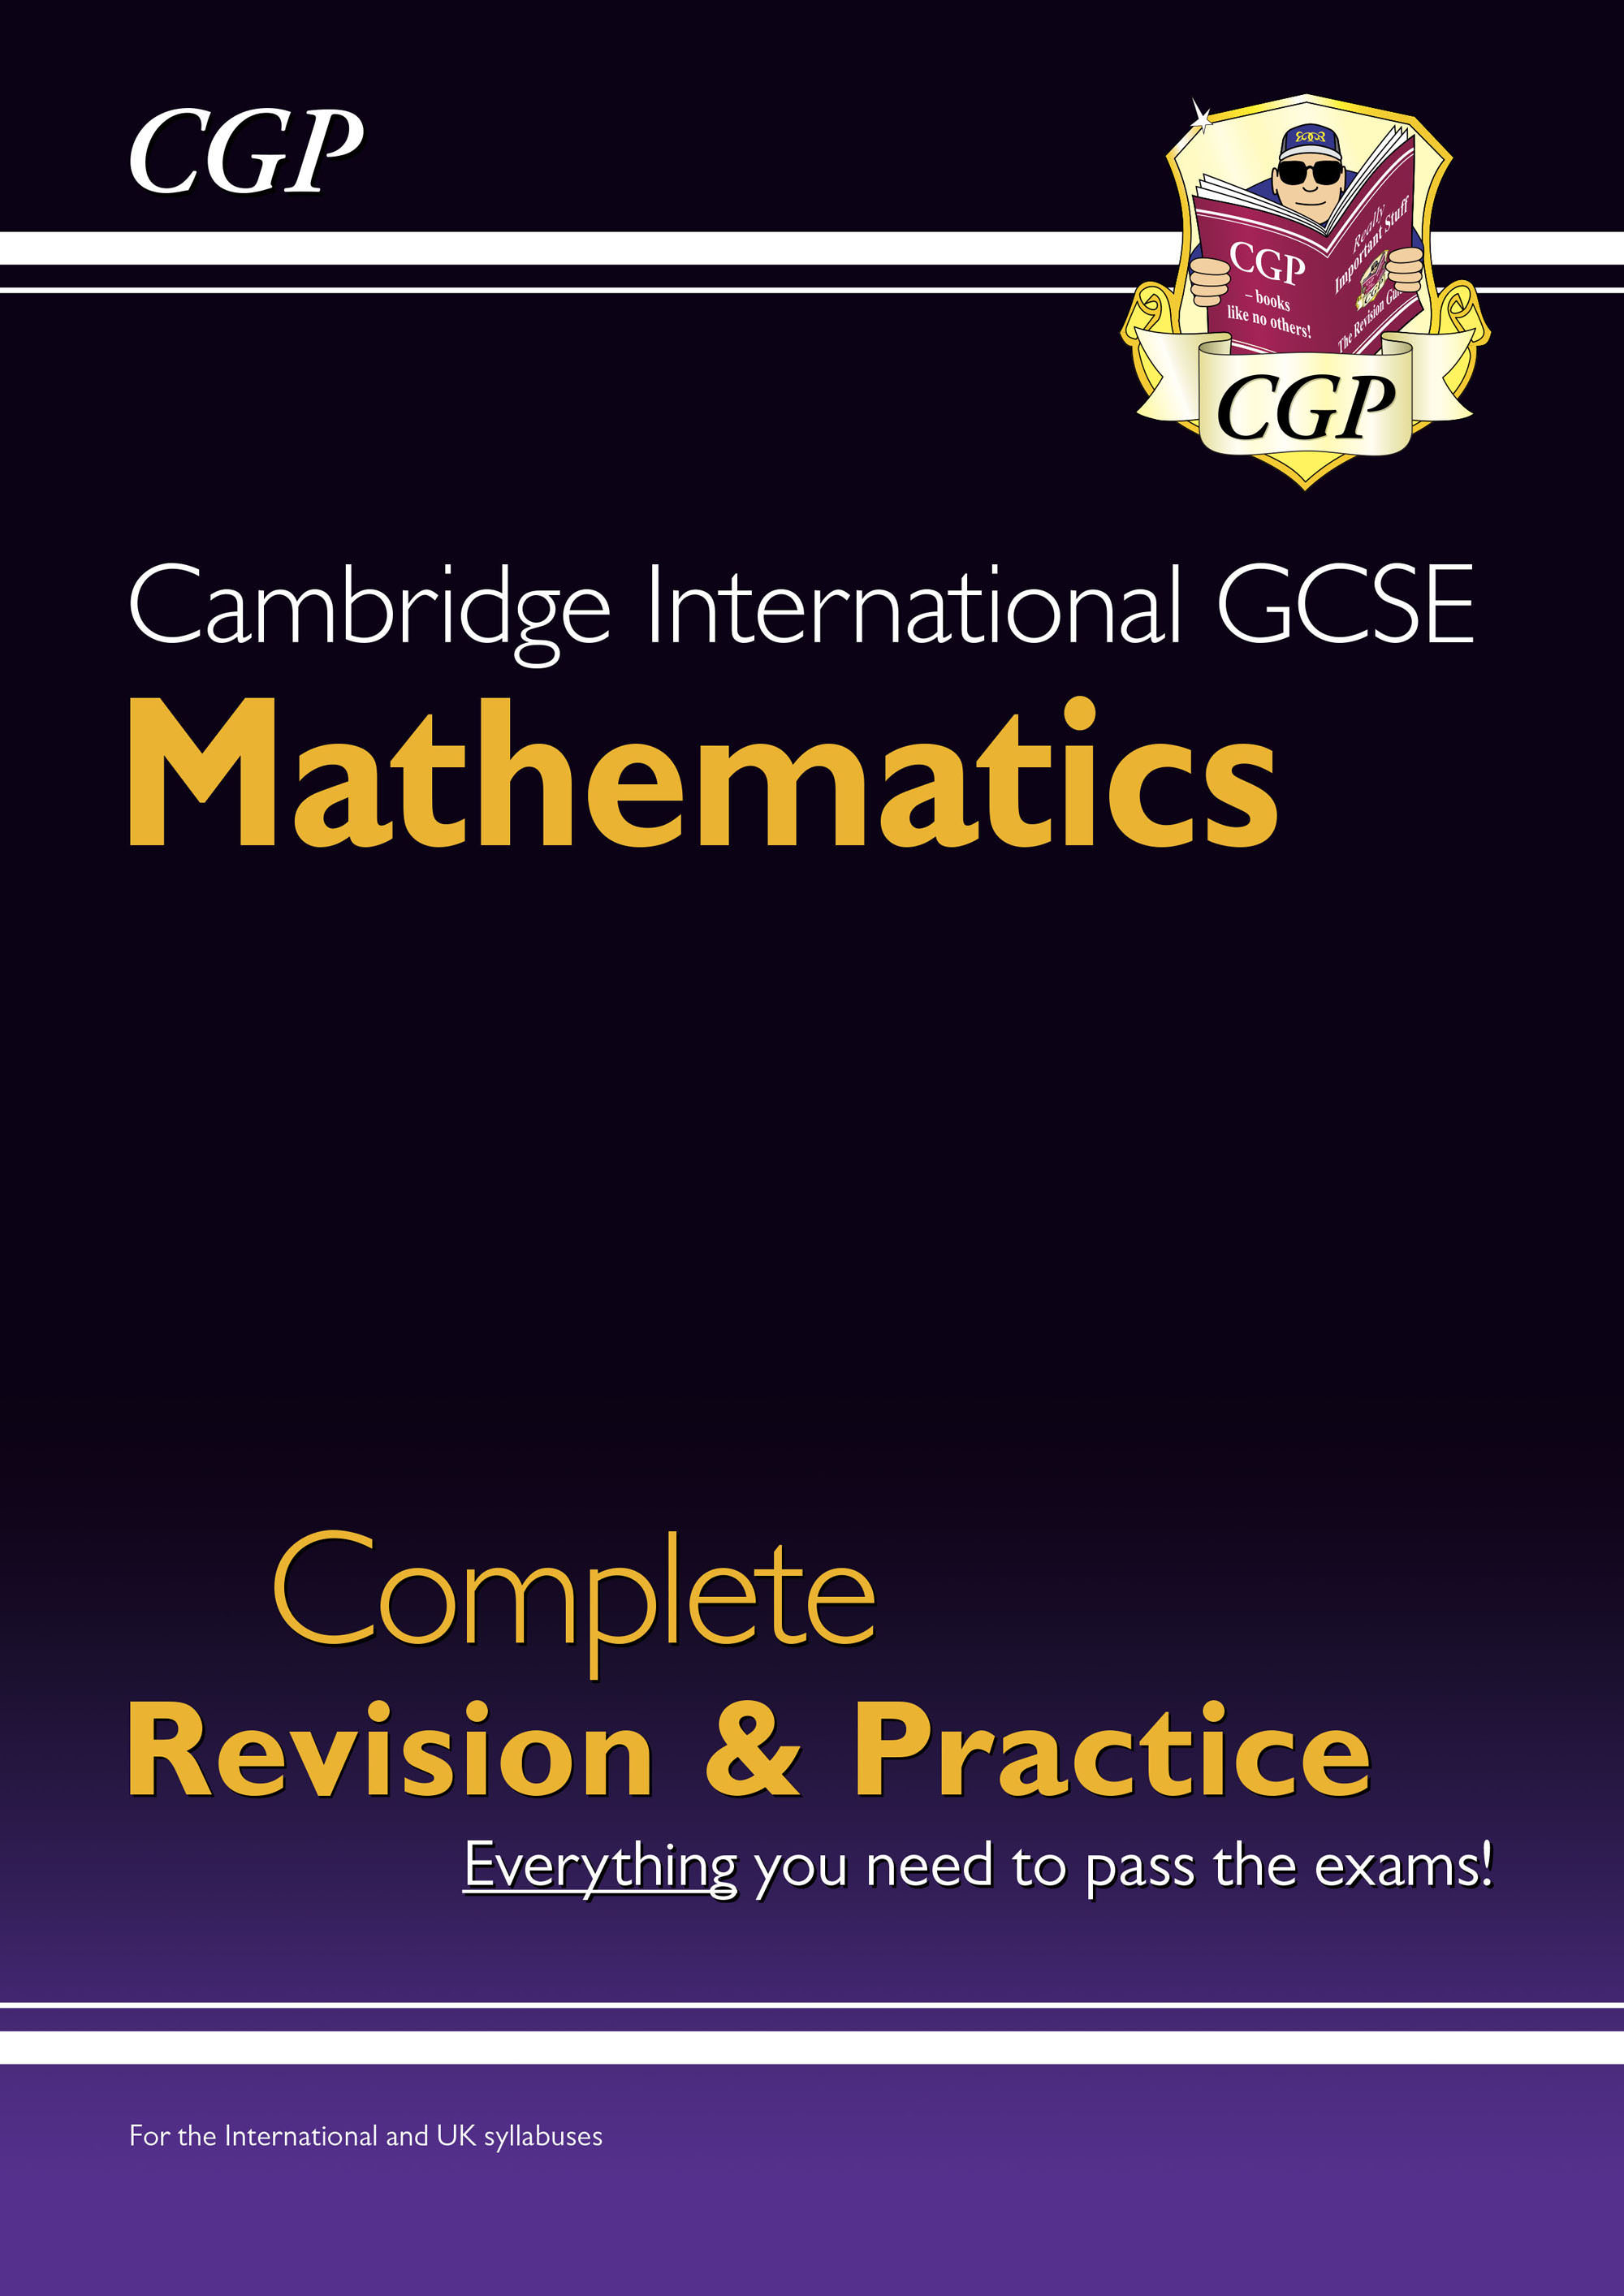 MISI41DK - New Cambridge International GCSE Maths Complete Revision & Practice: Core & Extended